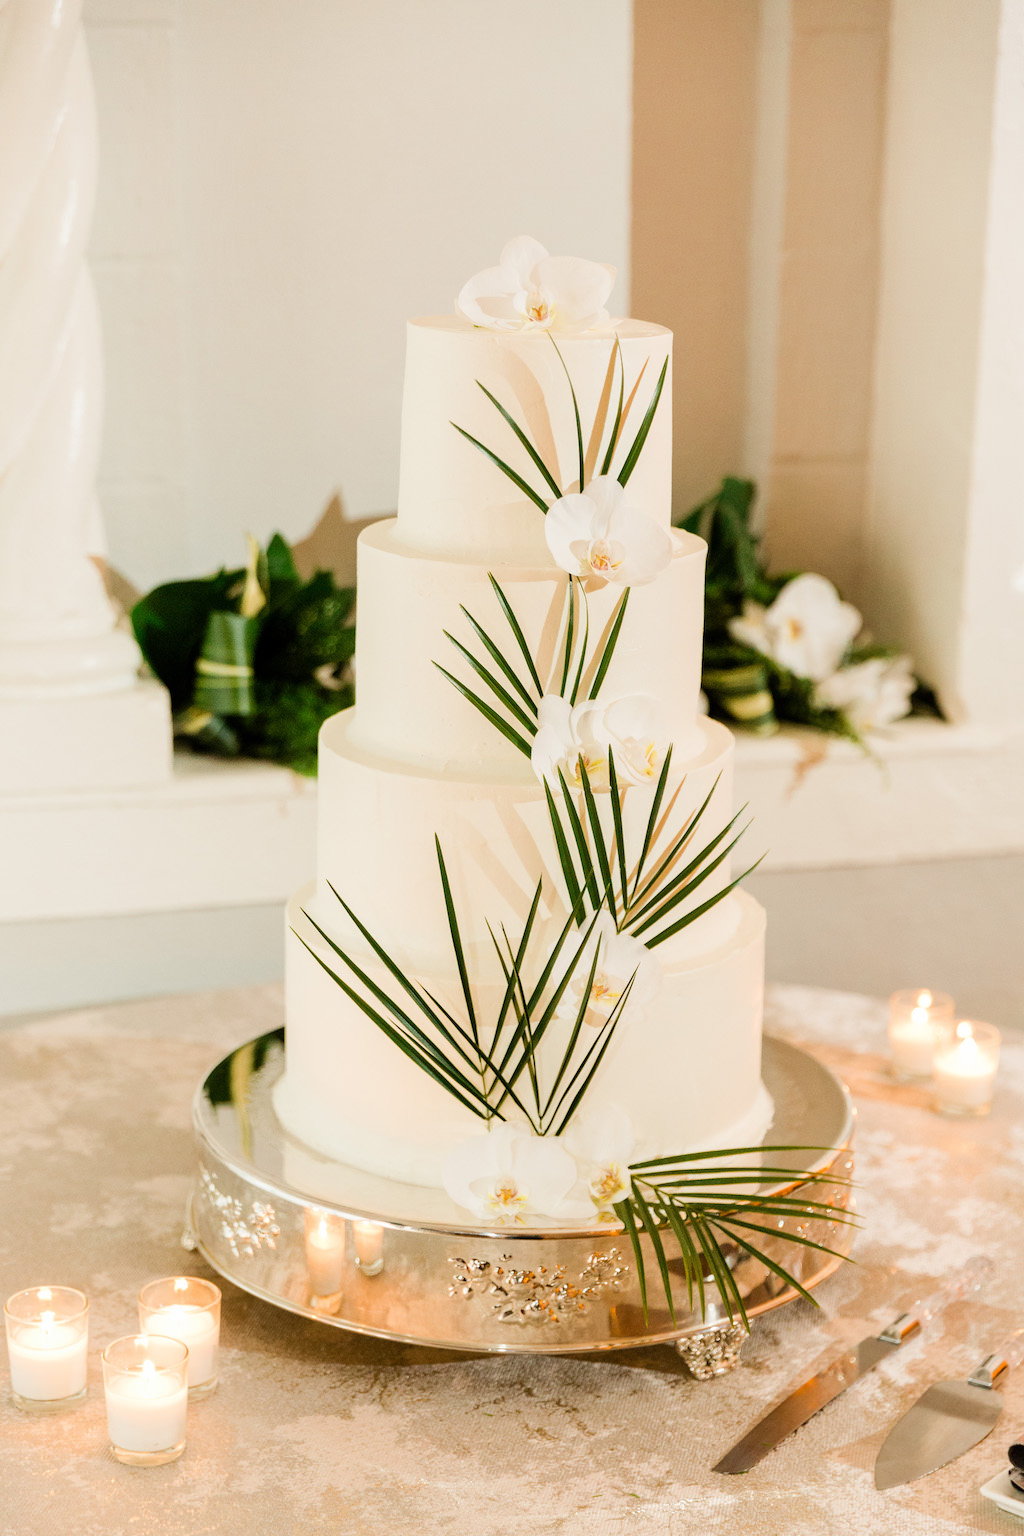 Modern, Smooth White Four Tier Wedding Cake with Dark Green Palm Leaves, White Orchid Flower, Silver Cake Stand | The Vinoy Renaissance St. Petersburg Resort & Golf Club | Luxury Florida Wedding Planner Parties A'La Carte